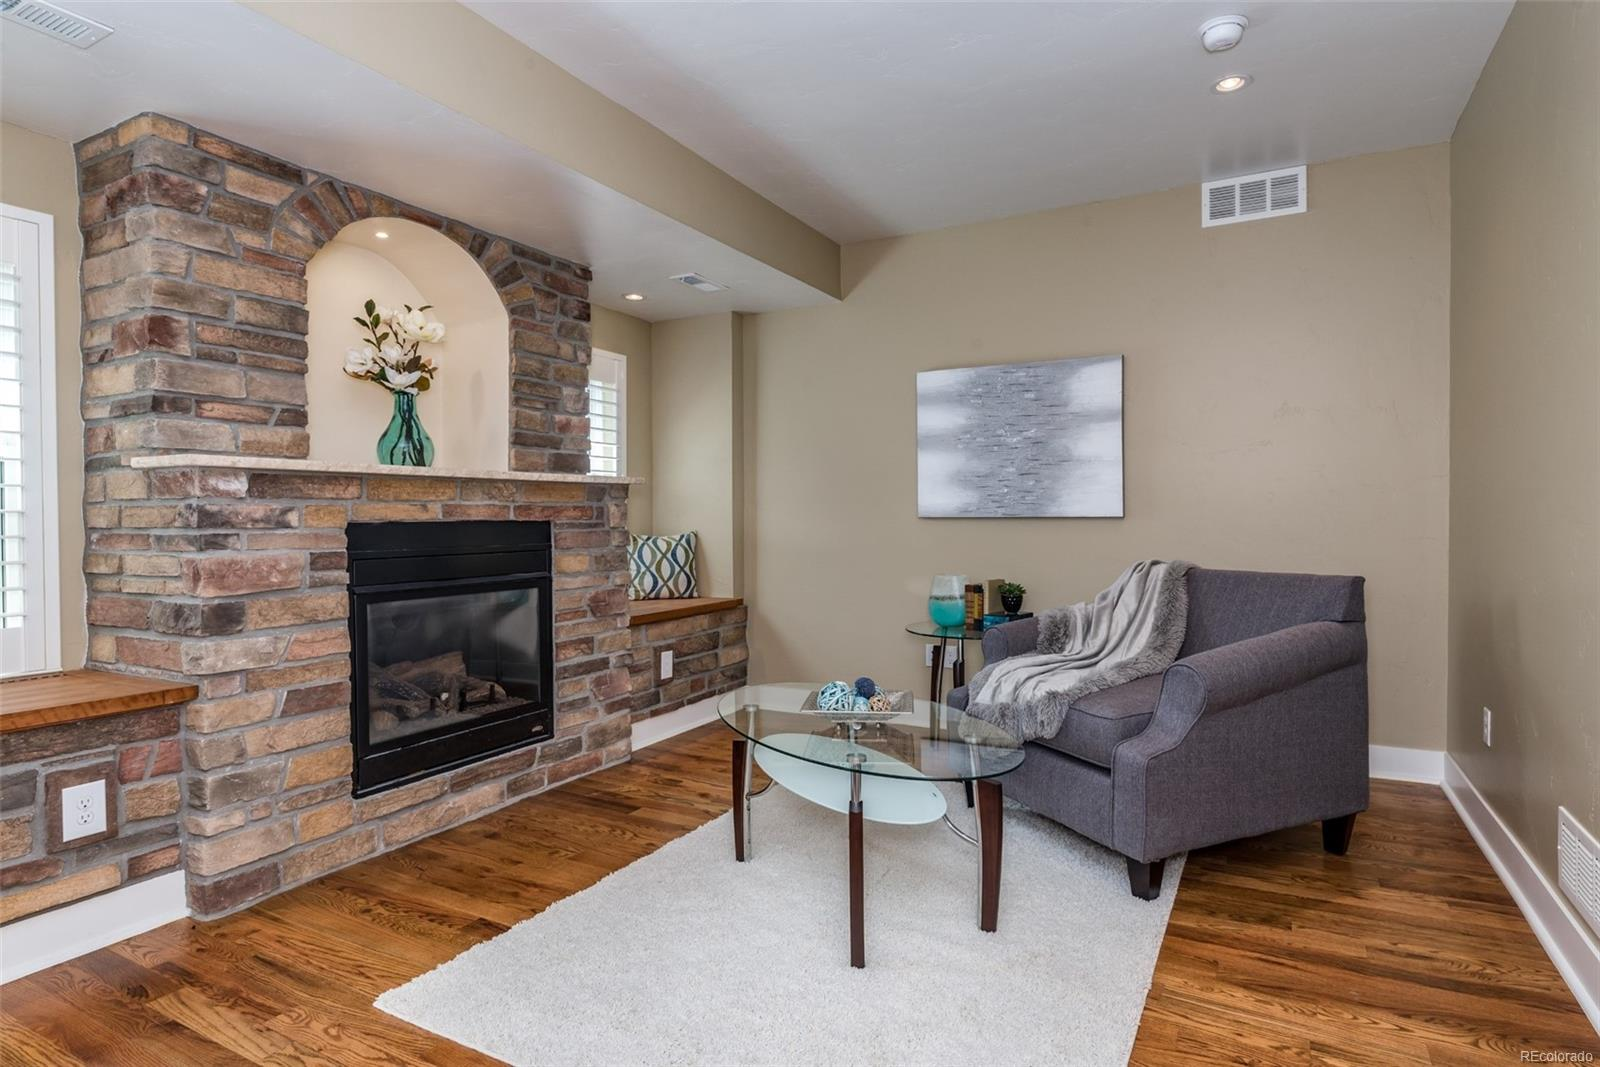 SITTING/READING AREA WITH REMOTE CONTROL GAS FIREPLACE IN THE MASTER BEDROOM!